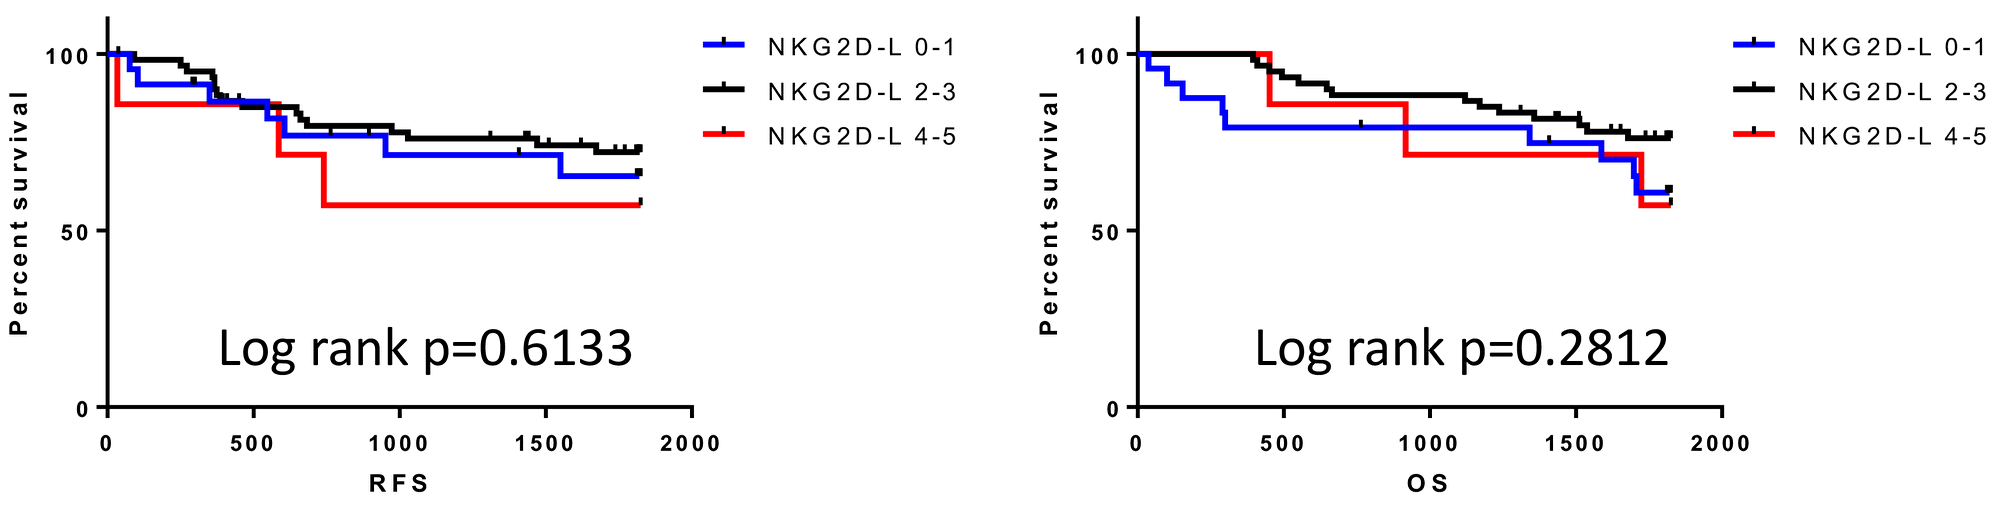 Survival outcomes for patients classified by the number of overexpressing NKG2D ligands.